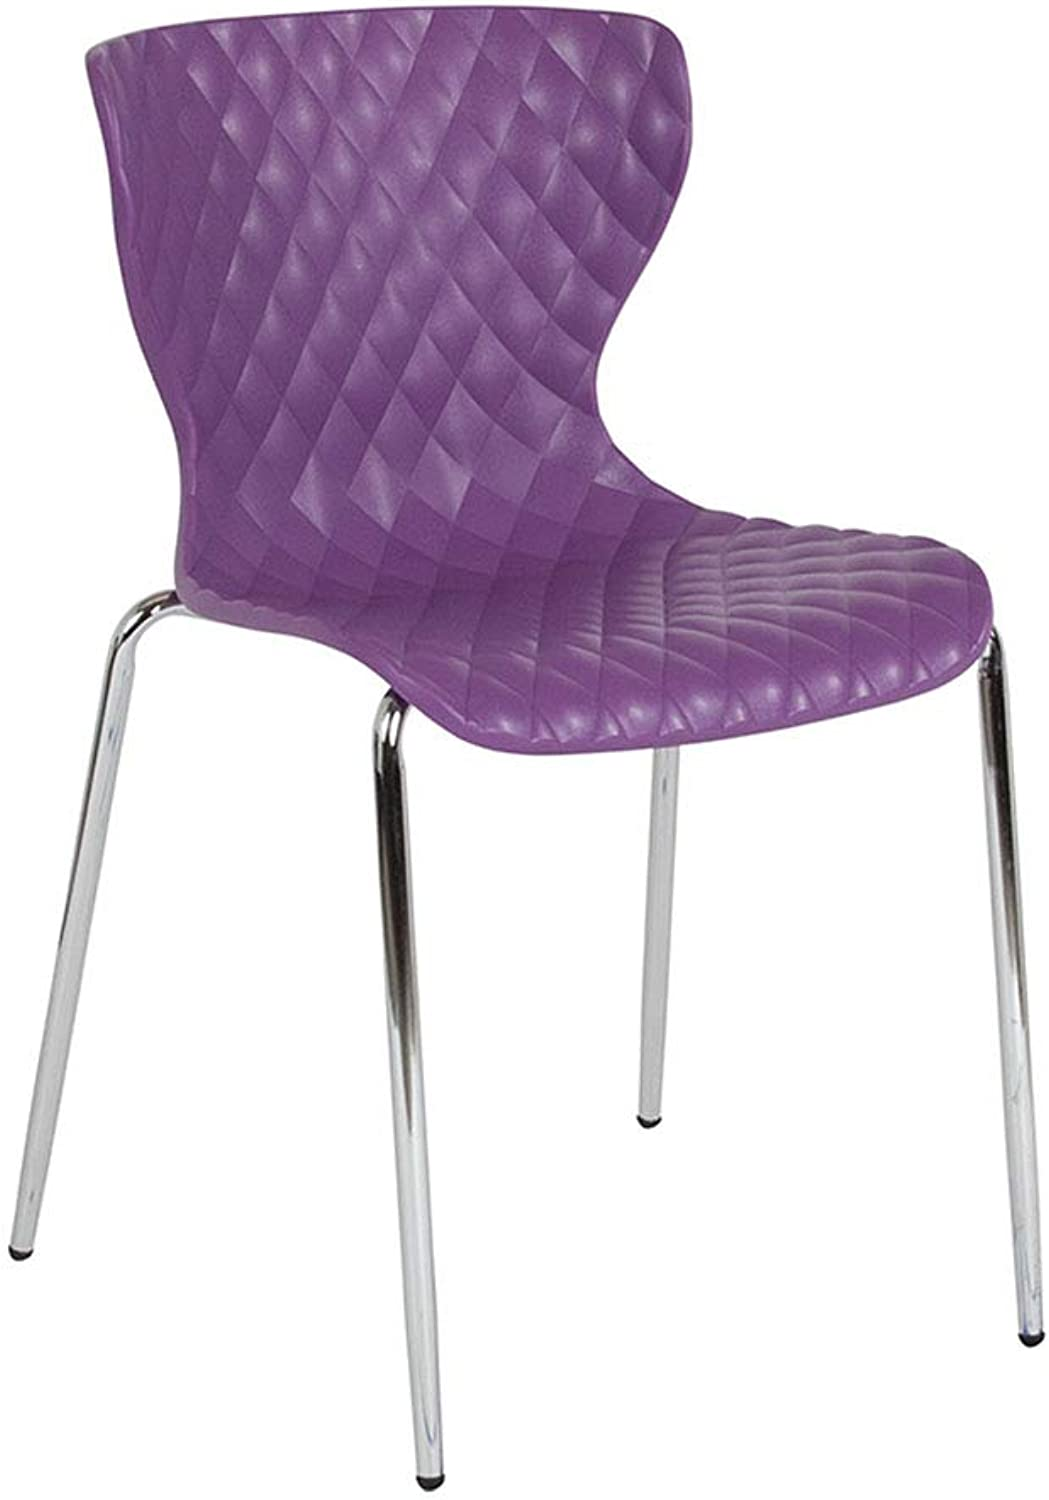 Offex Contemporary Design Curved Back Plastic Stack Chair, Purple